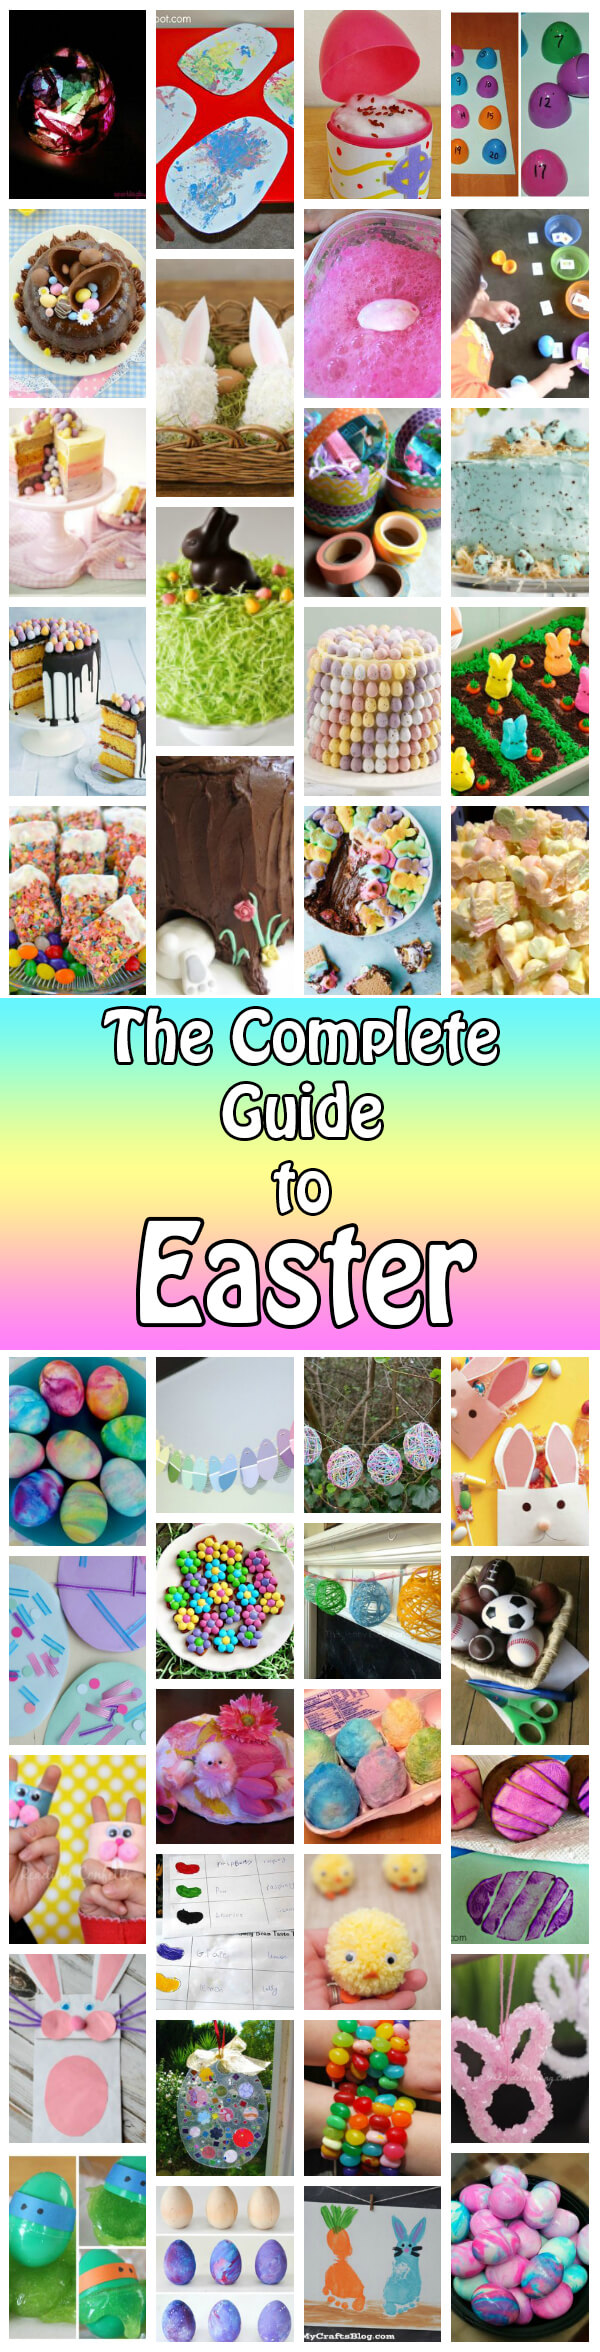 The Complete Guide to Easter - Holiday Vault